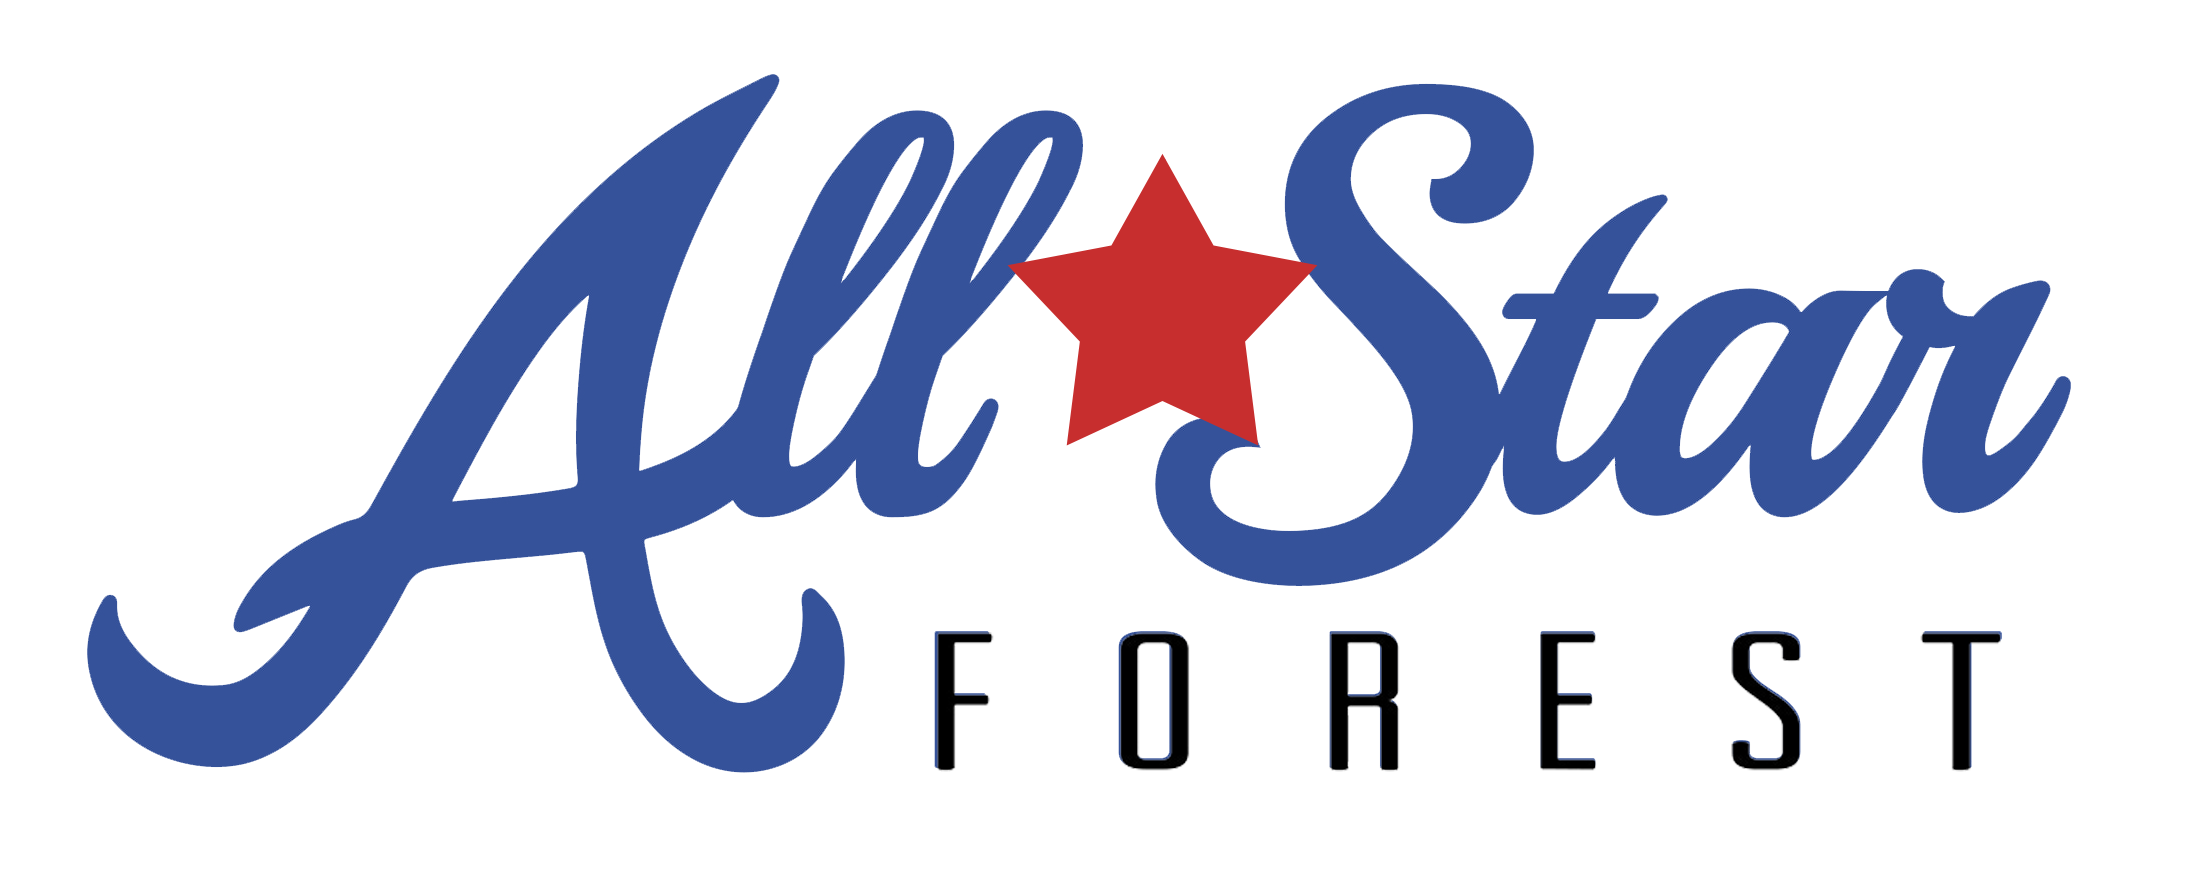 ASF-logo-blue-red-alt